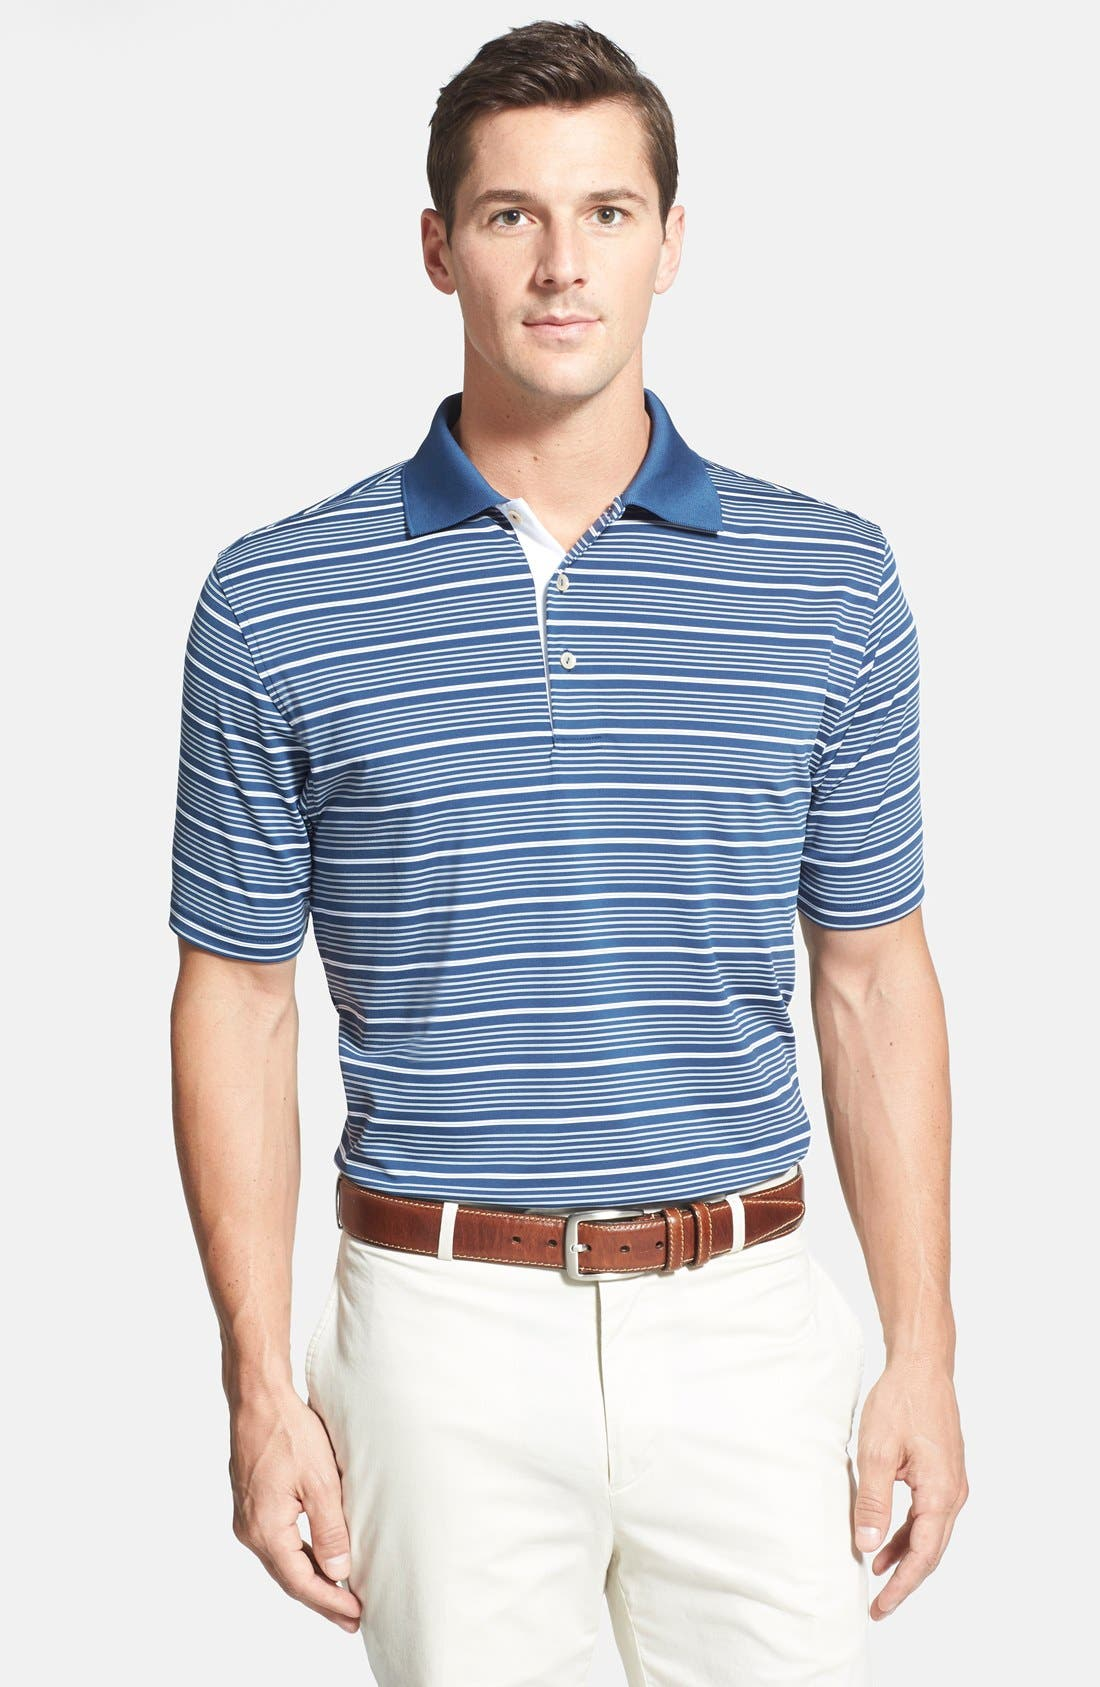 'Staley' Moisture Wicking Polo,                             Main thumbnail 1, color,                             402